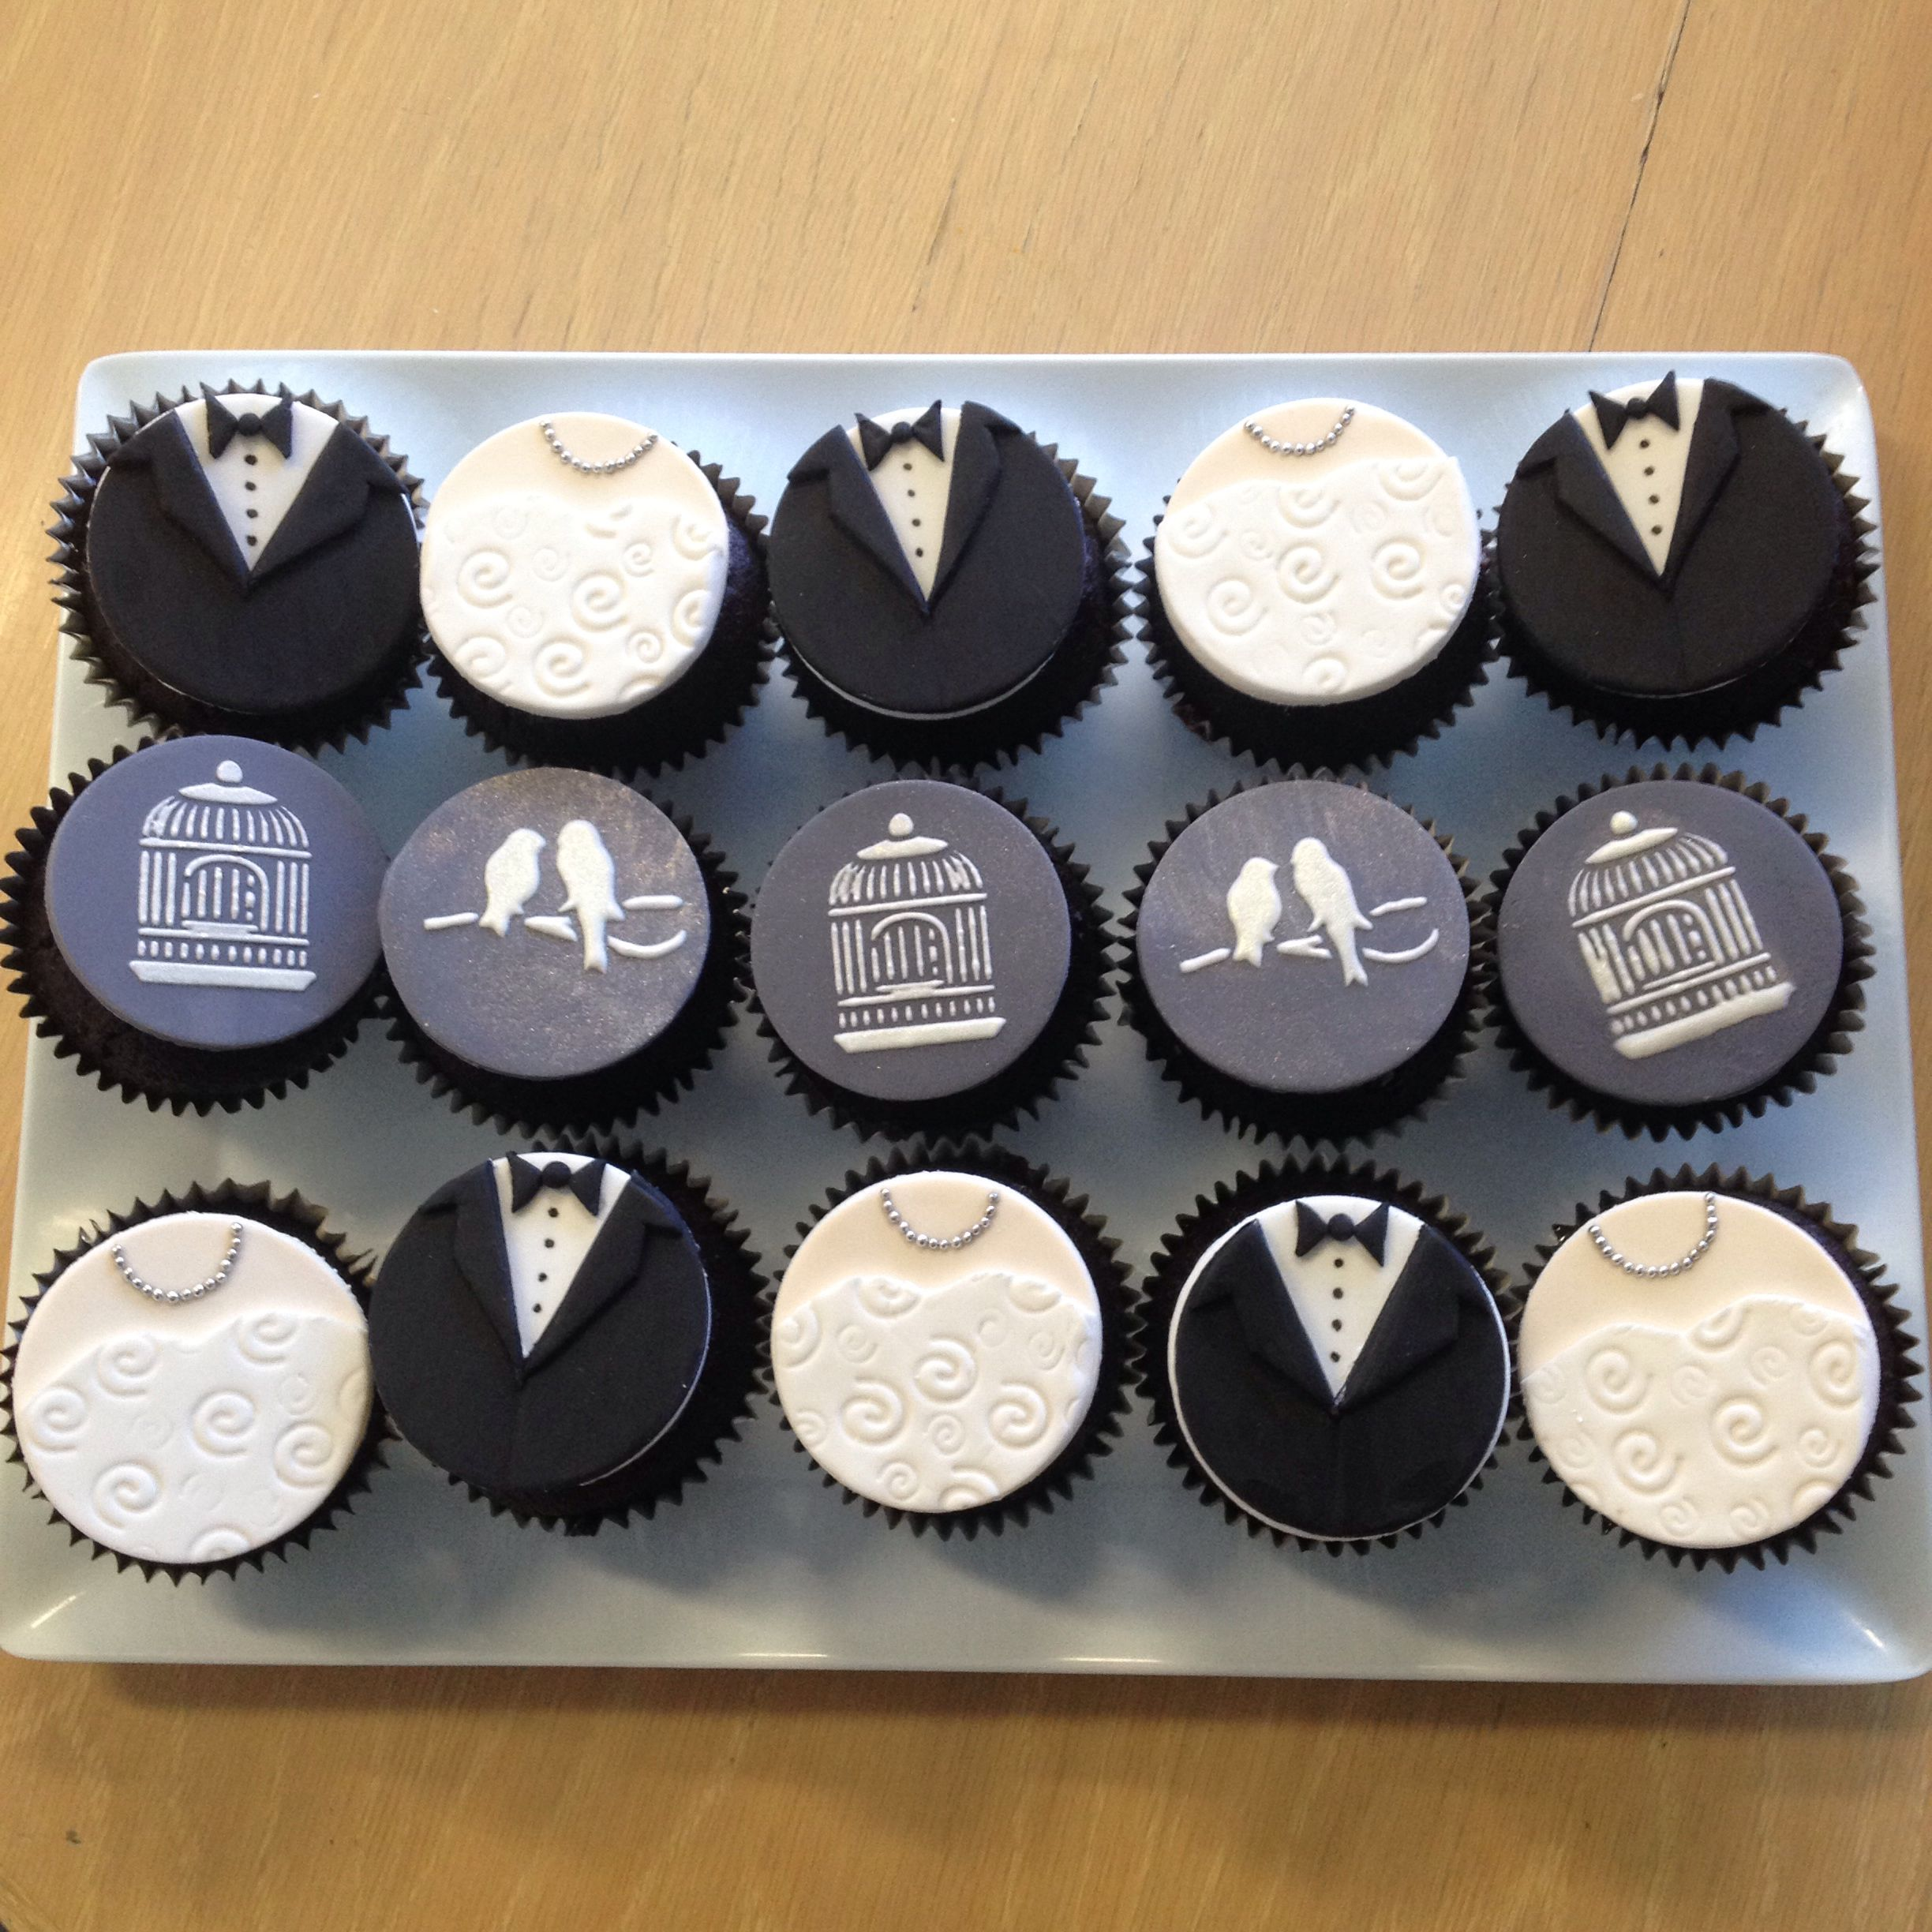 Surprise Gift For Groom On Wedding Day: My Bride & Groom Cupcakes, A Surprise Gift For A Workmates